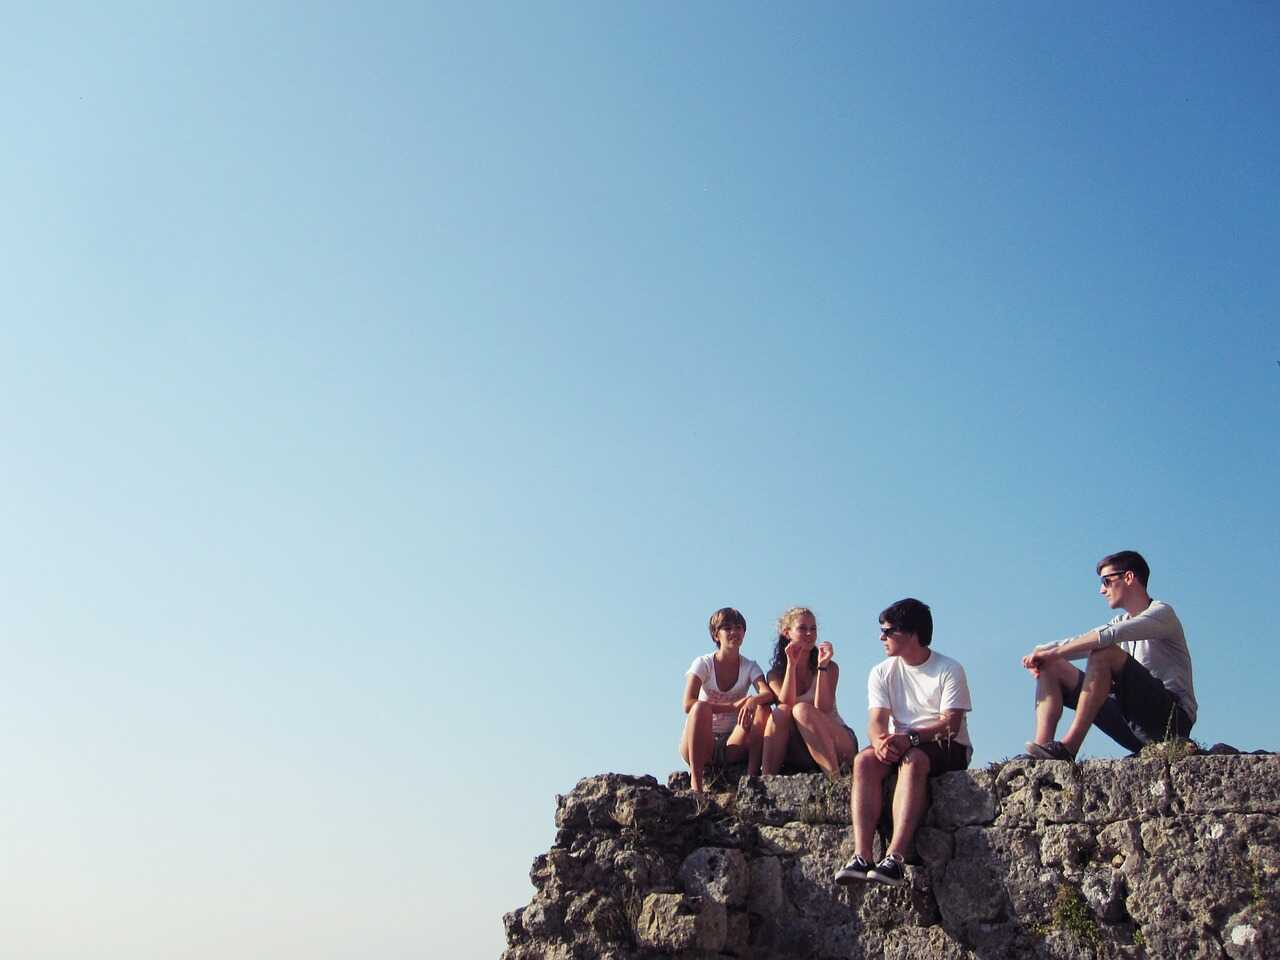 Young people sitting on a wall on a sunny day